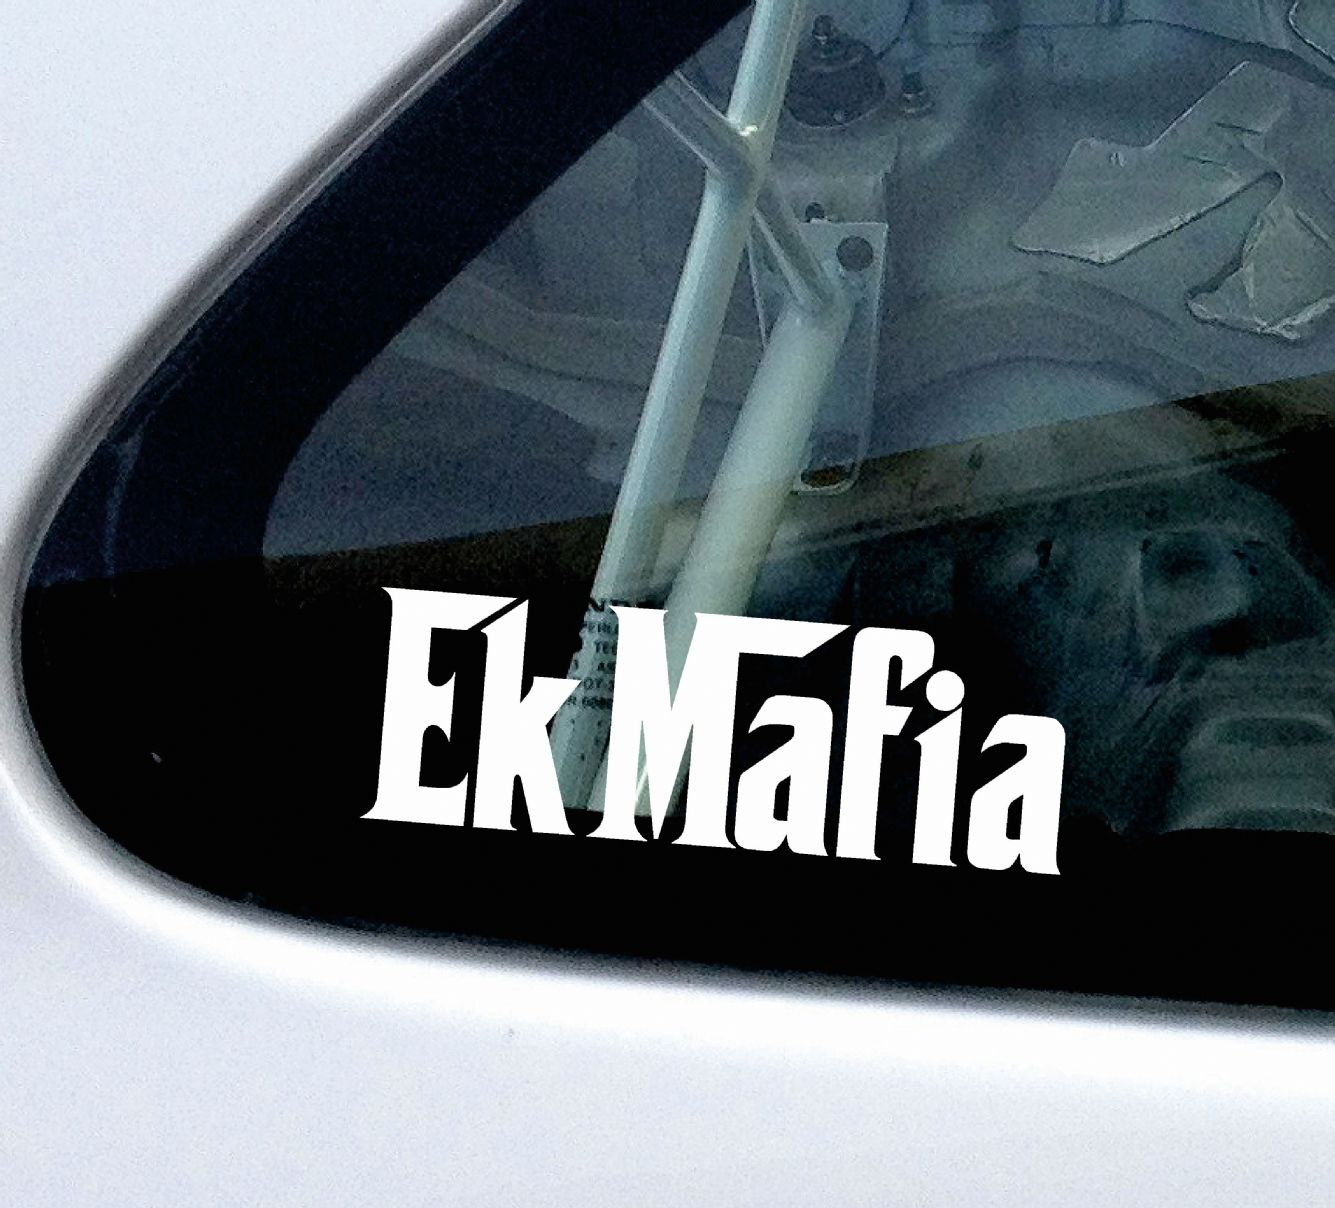 Ek mafia or custom test stickers decals for honda civic ek type r vti vtec si sir